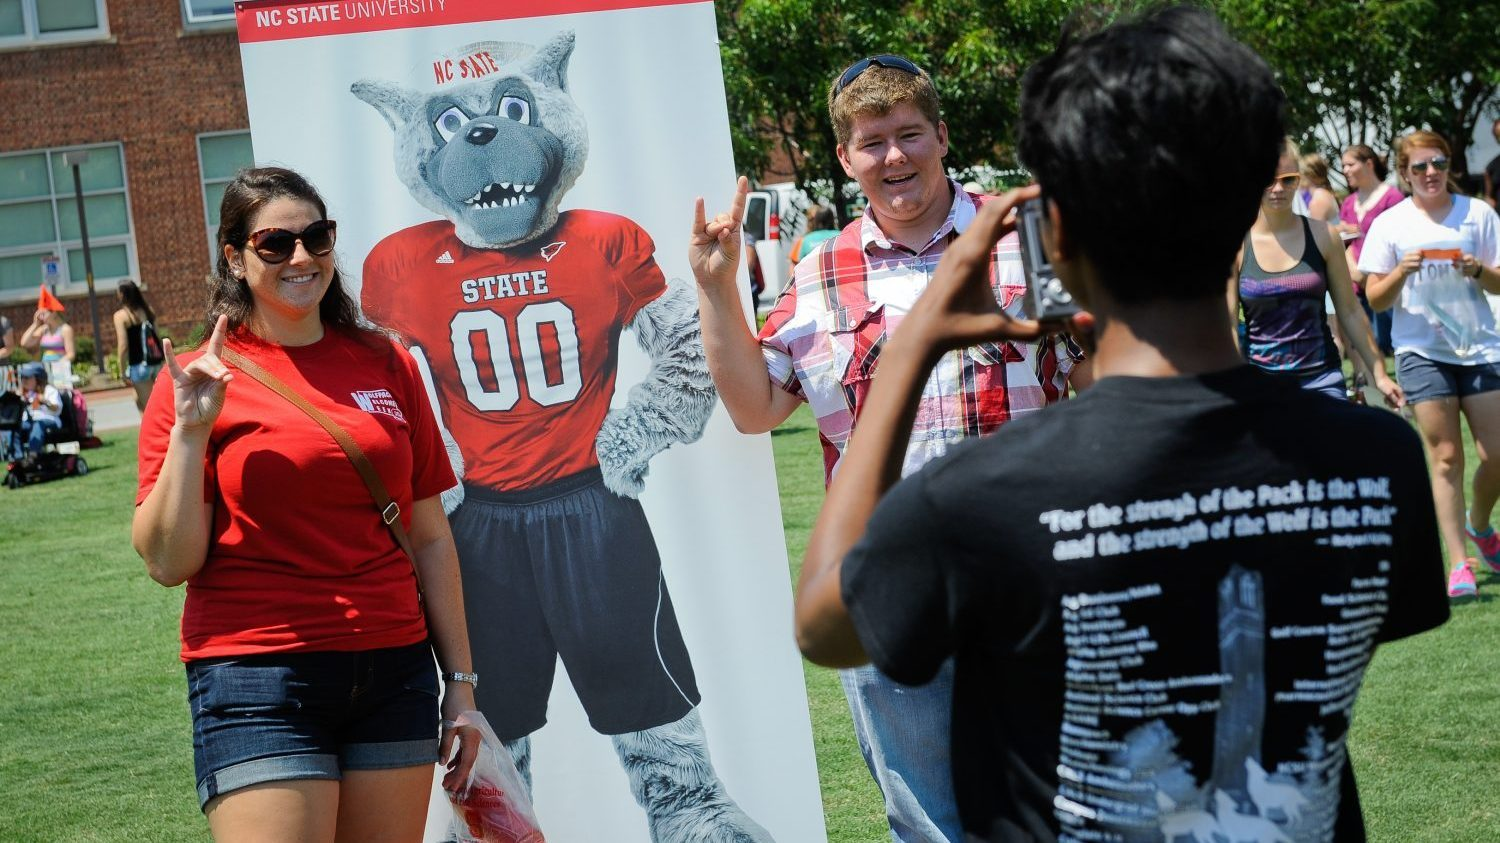 Students pose with a poster of Mr. Wuf at the CALS college connection event at NC State University.